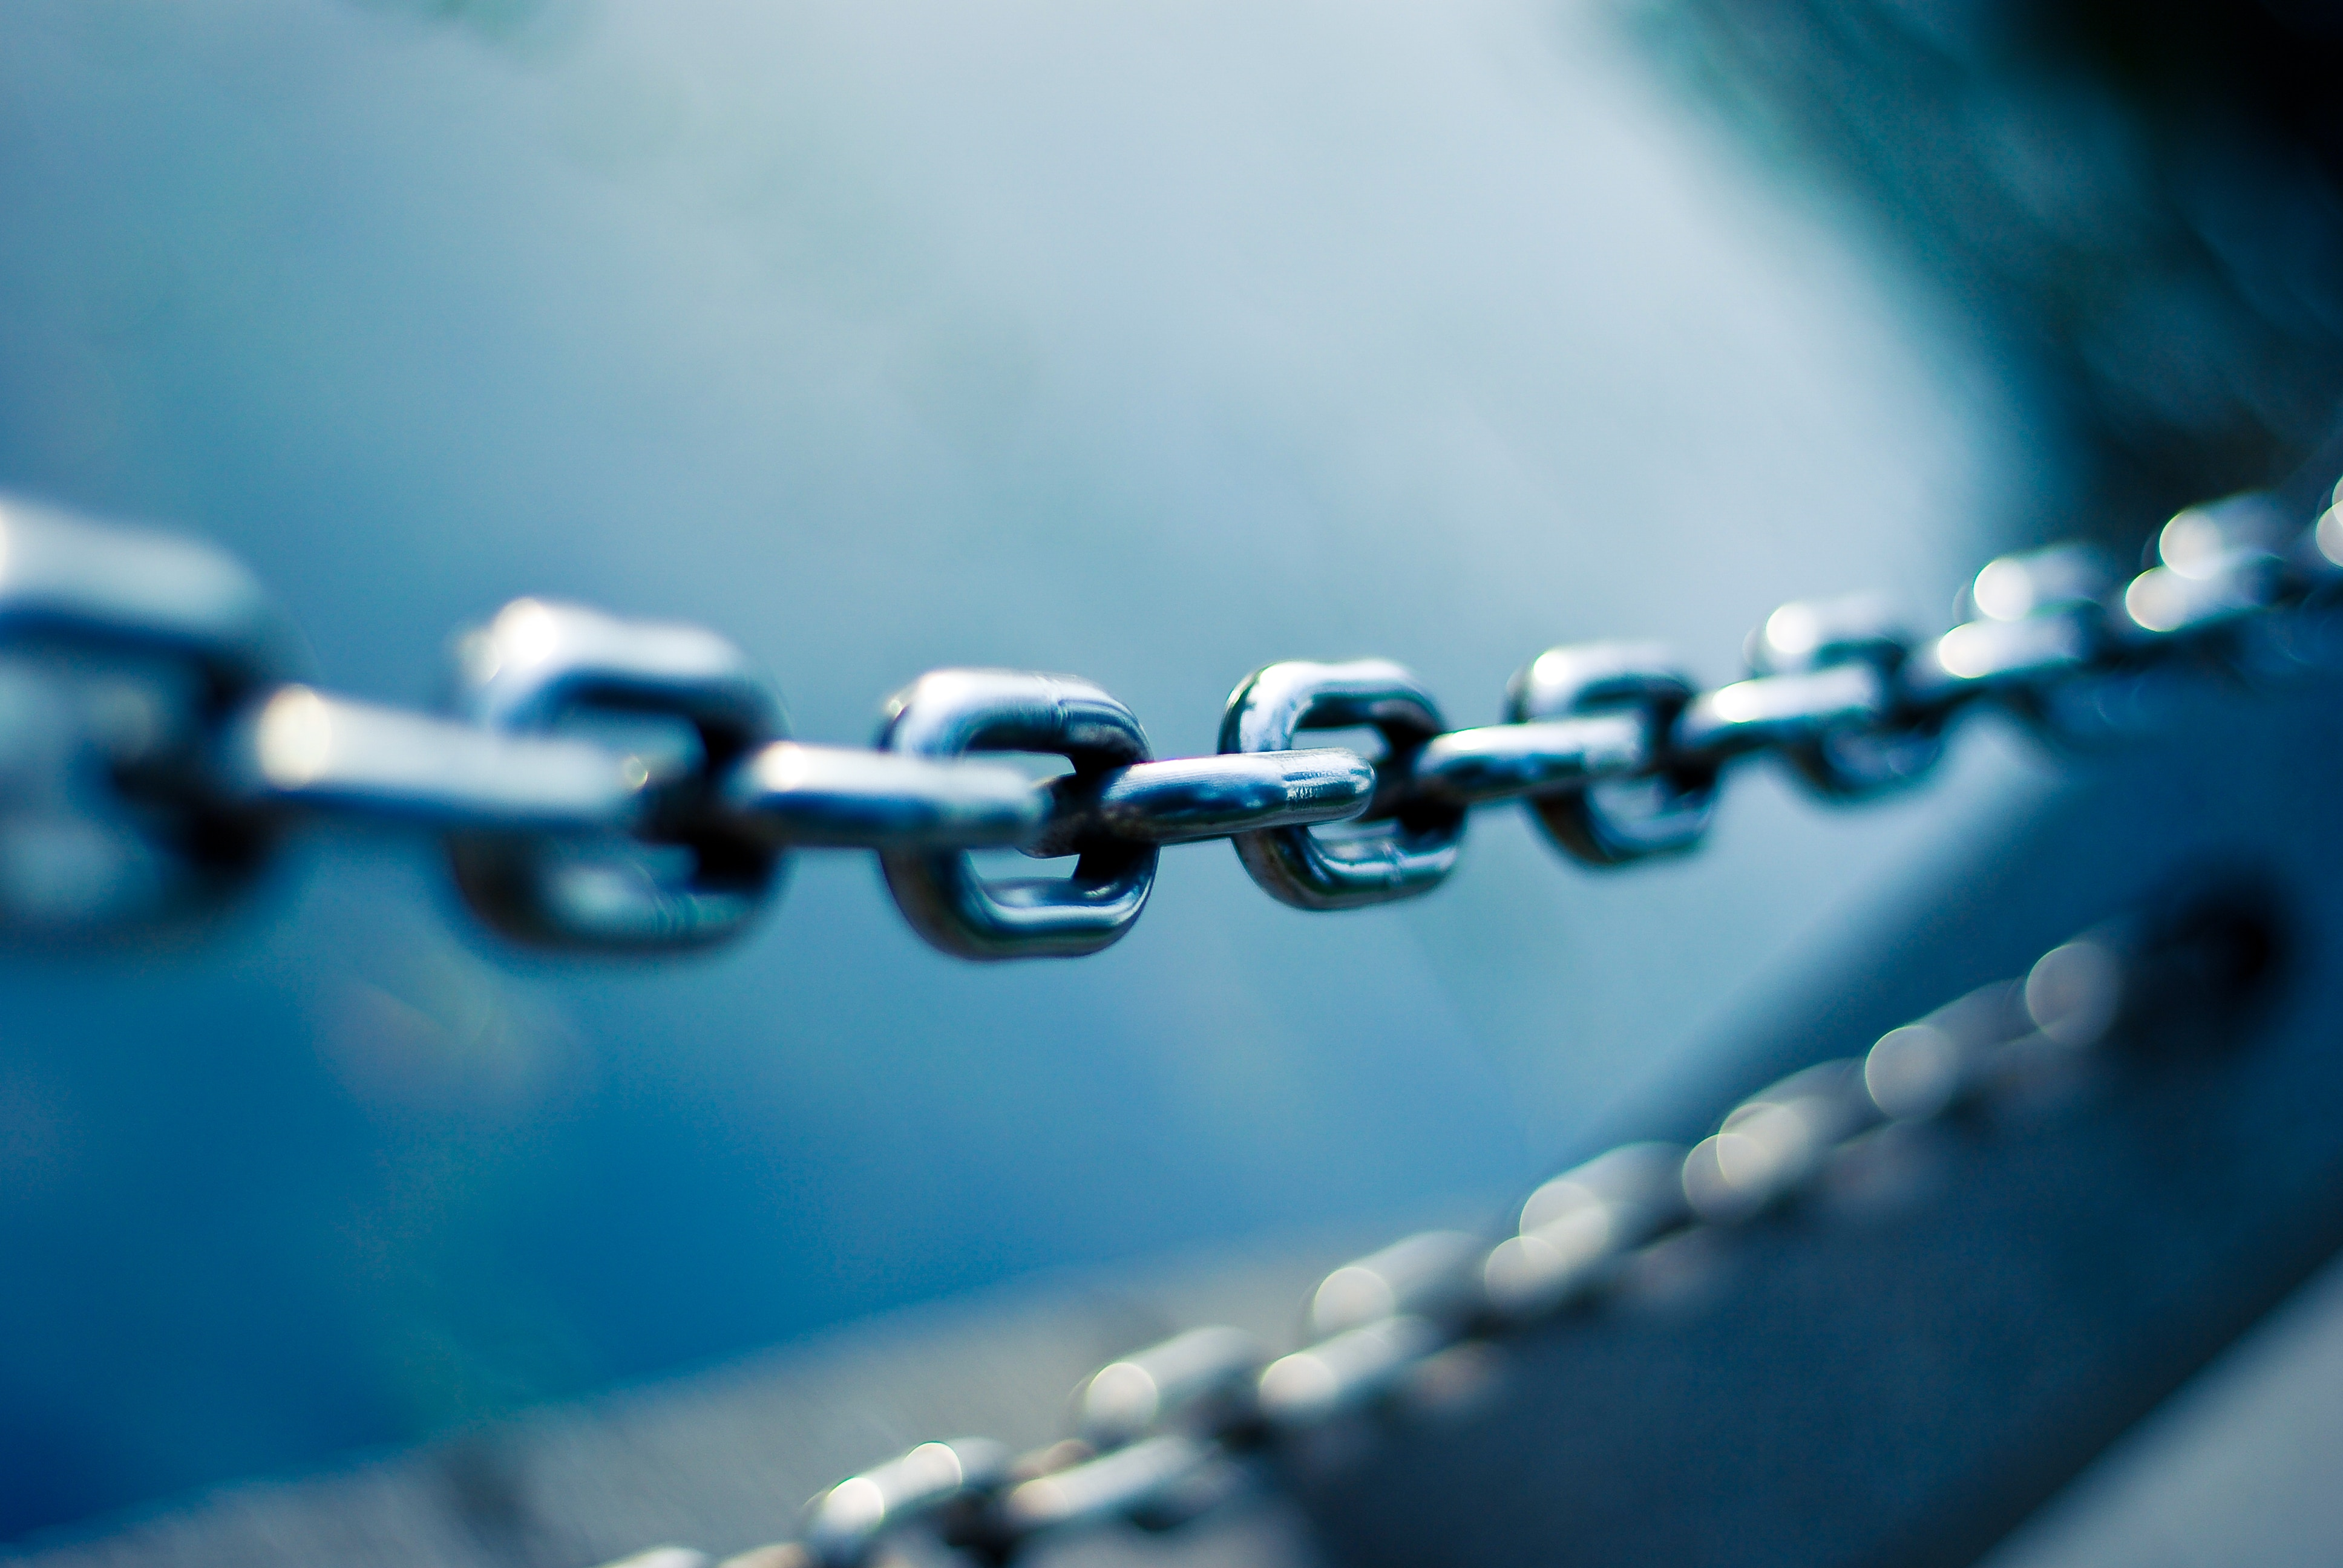 The three missing links to the Blockchain full potential